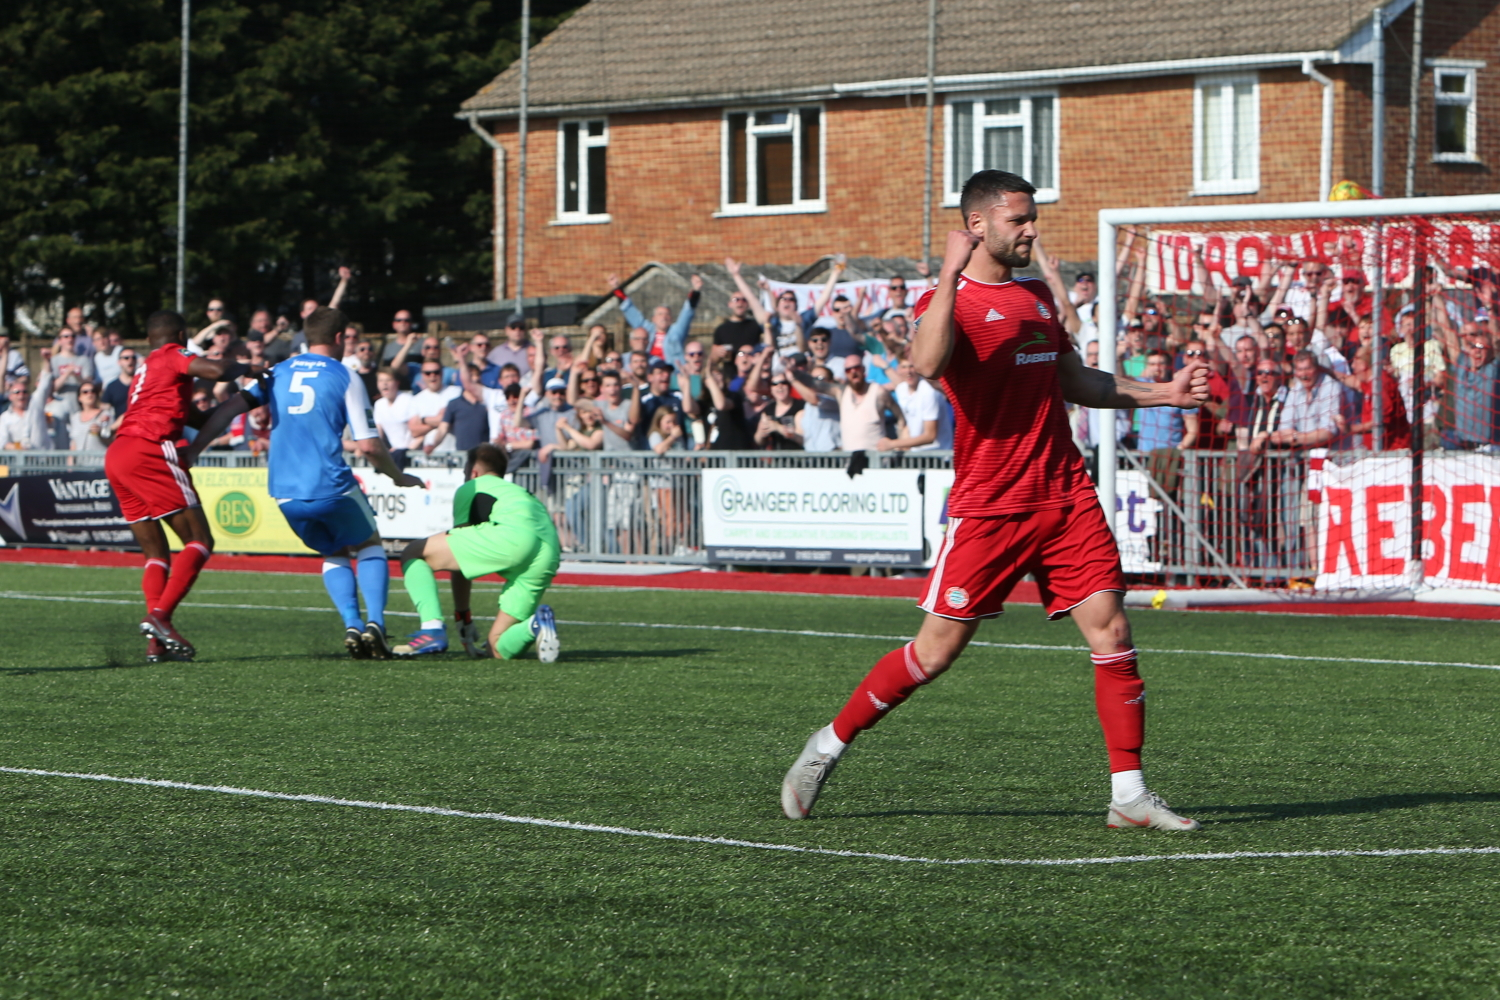 Read the full article - Pitchside at Woodside | Tonbridge [H]